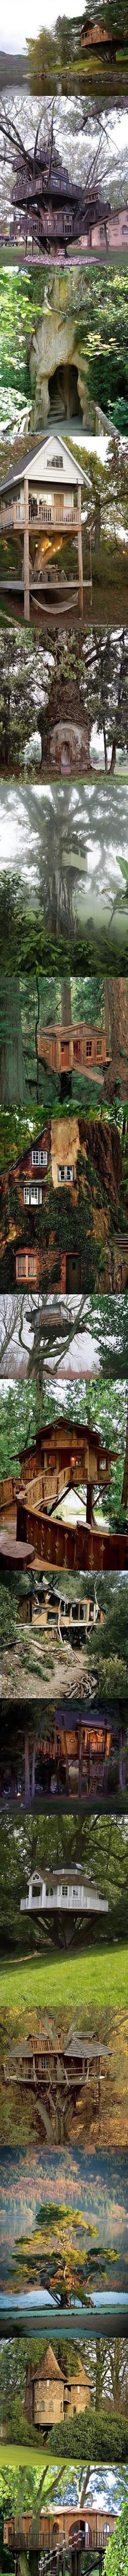 I Need A Grownup Tree House In My Life http://ibeebz.com